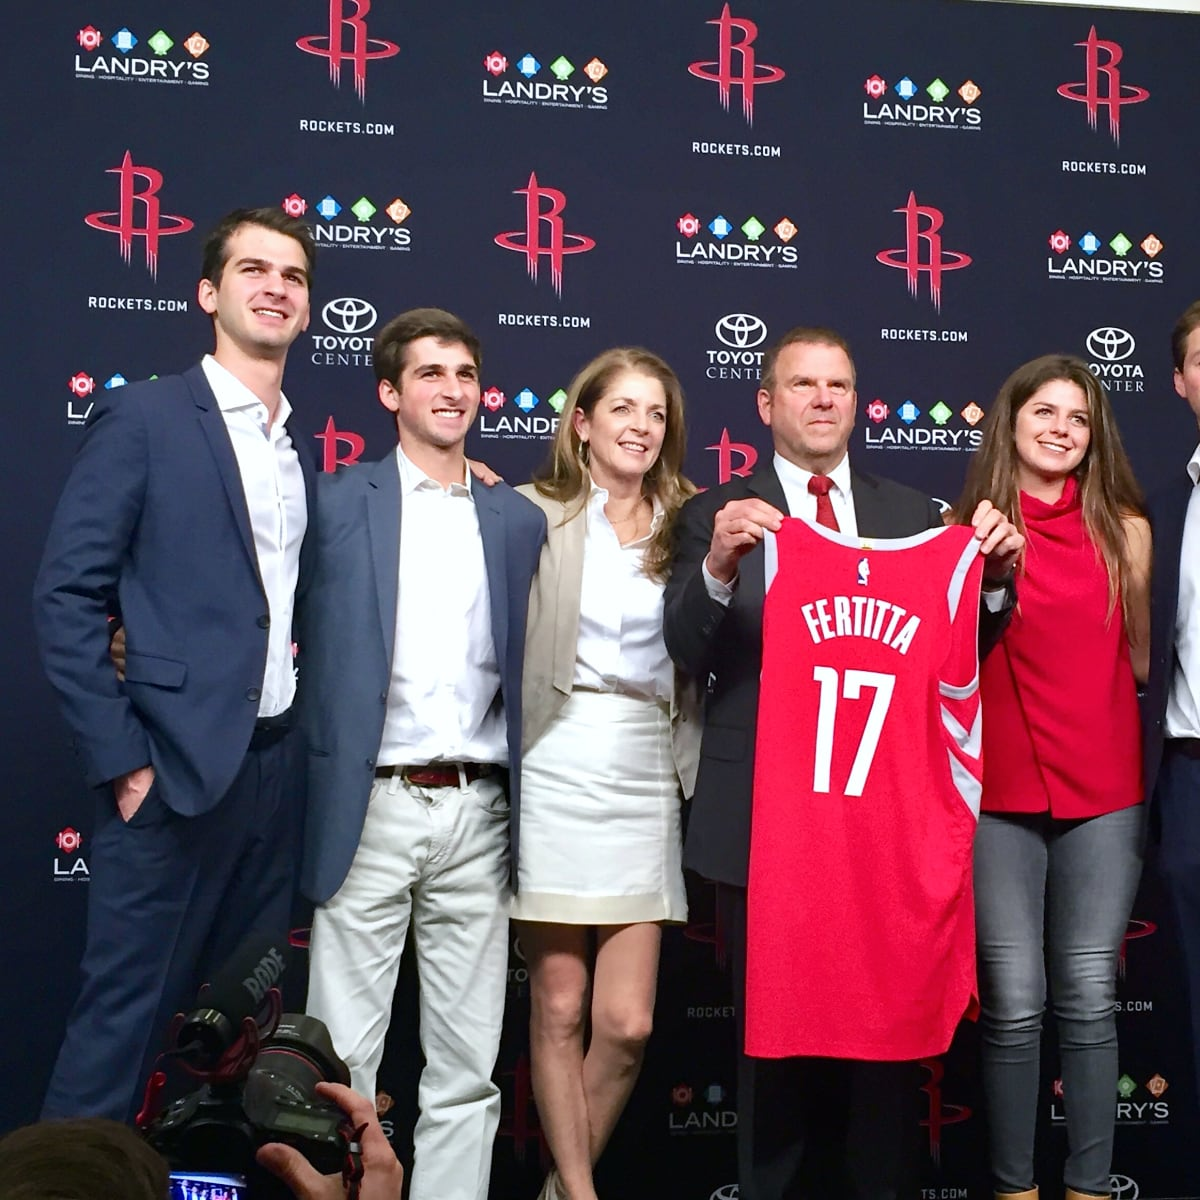 Houston, Rockets owner Tilman Fertitta and family, Oct 2017